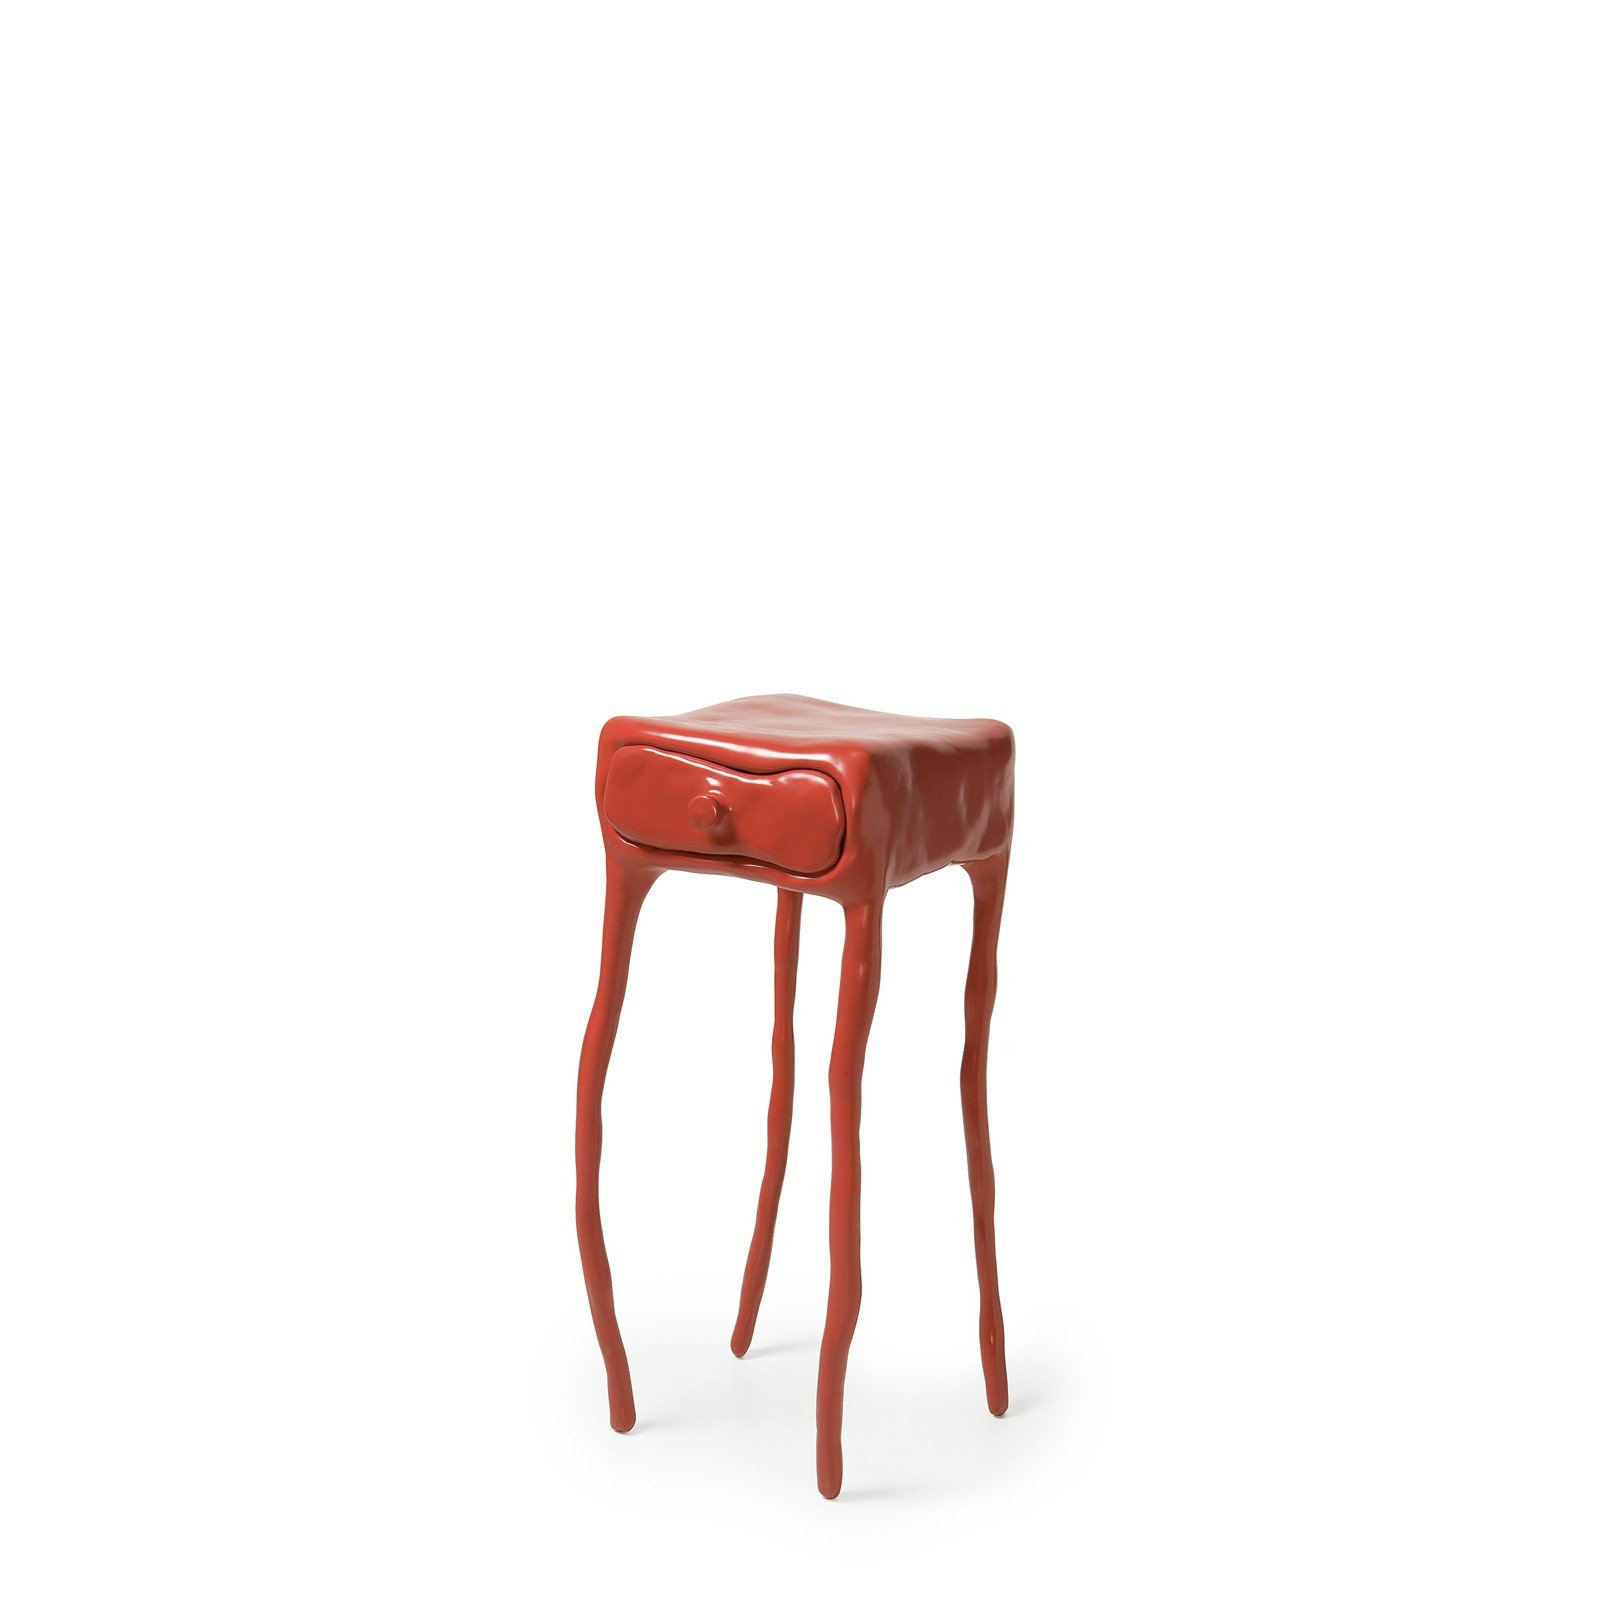 Maarten Baas - Clay Table with Drawer - Red